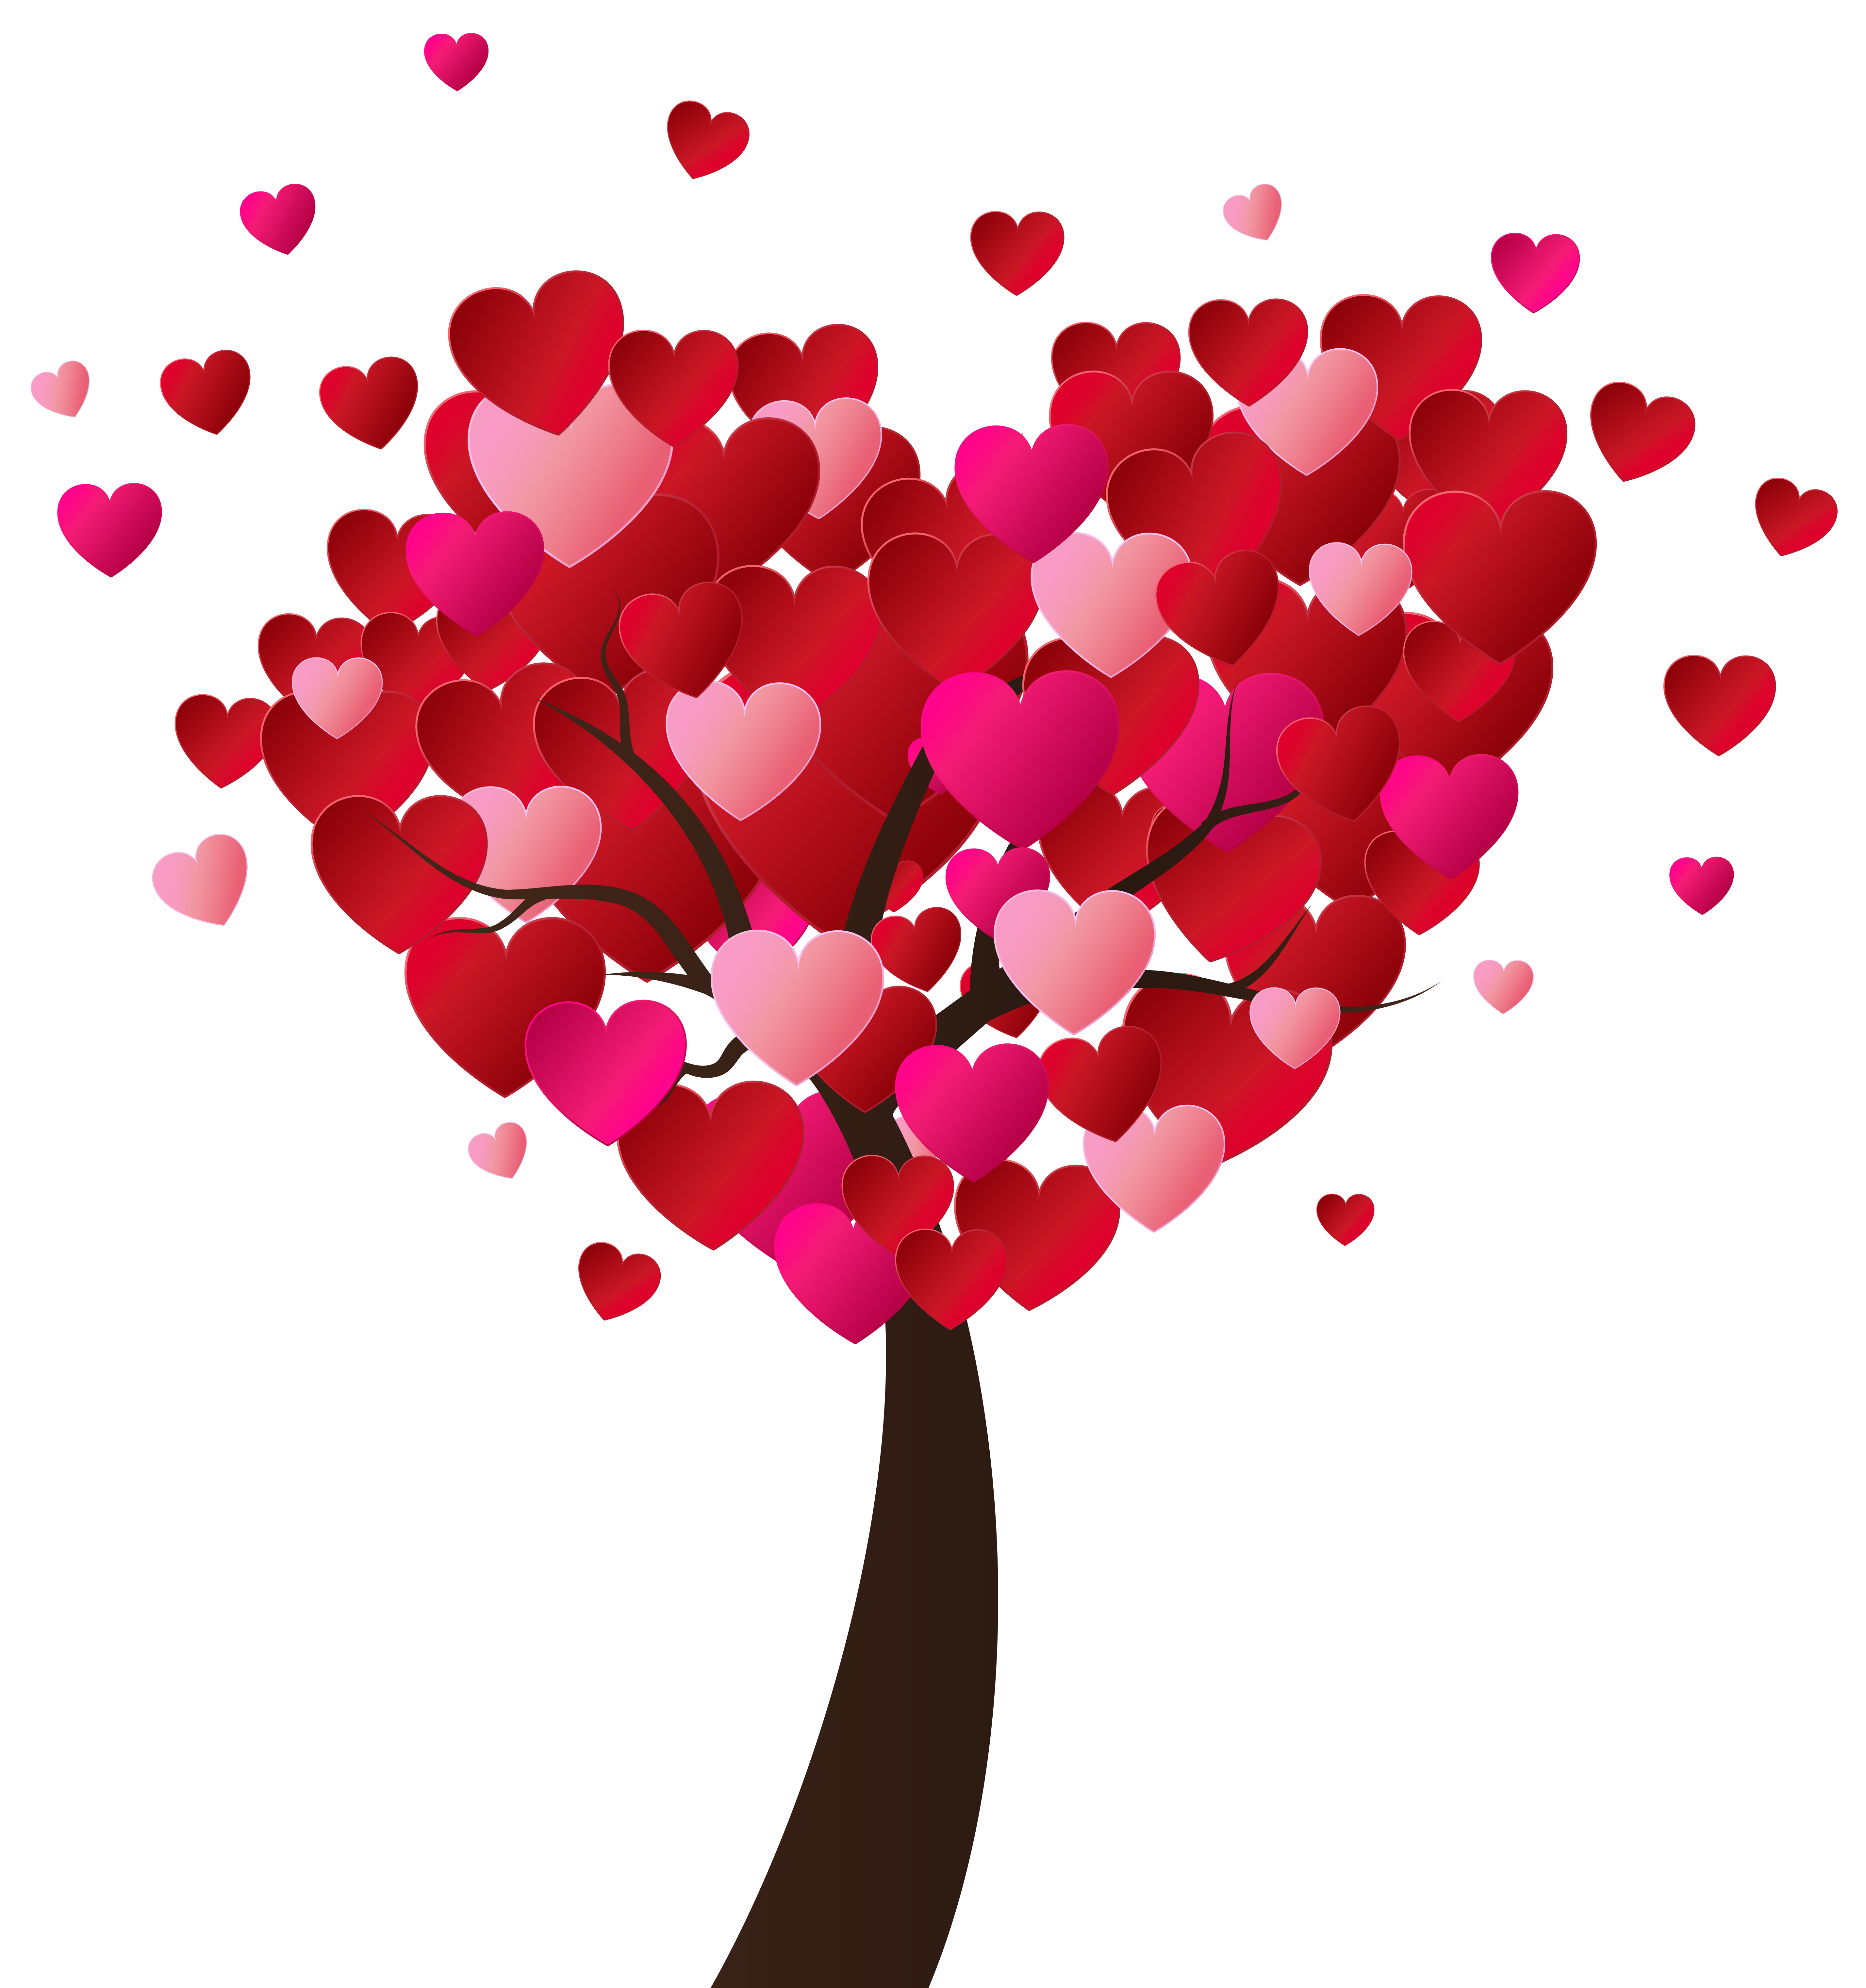 Valentine S Day Heart Tree Png Clip Art Image Gallery Yopriceville